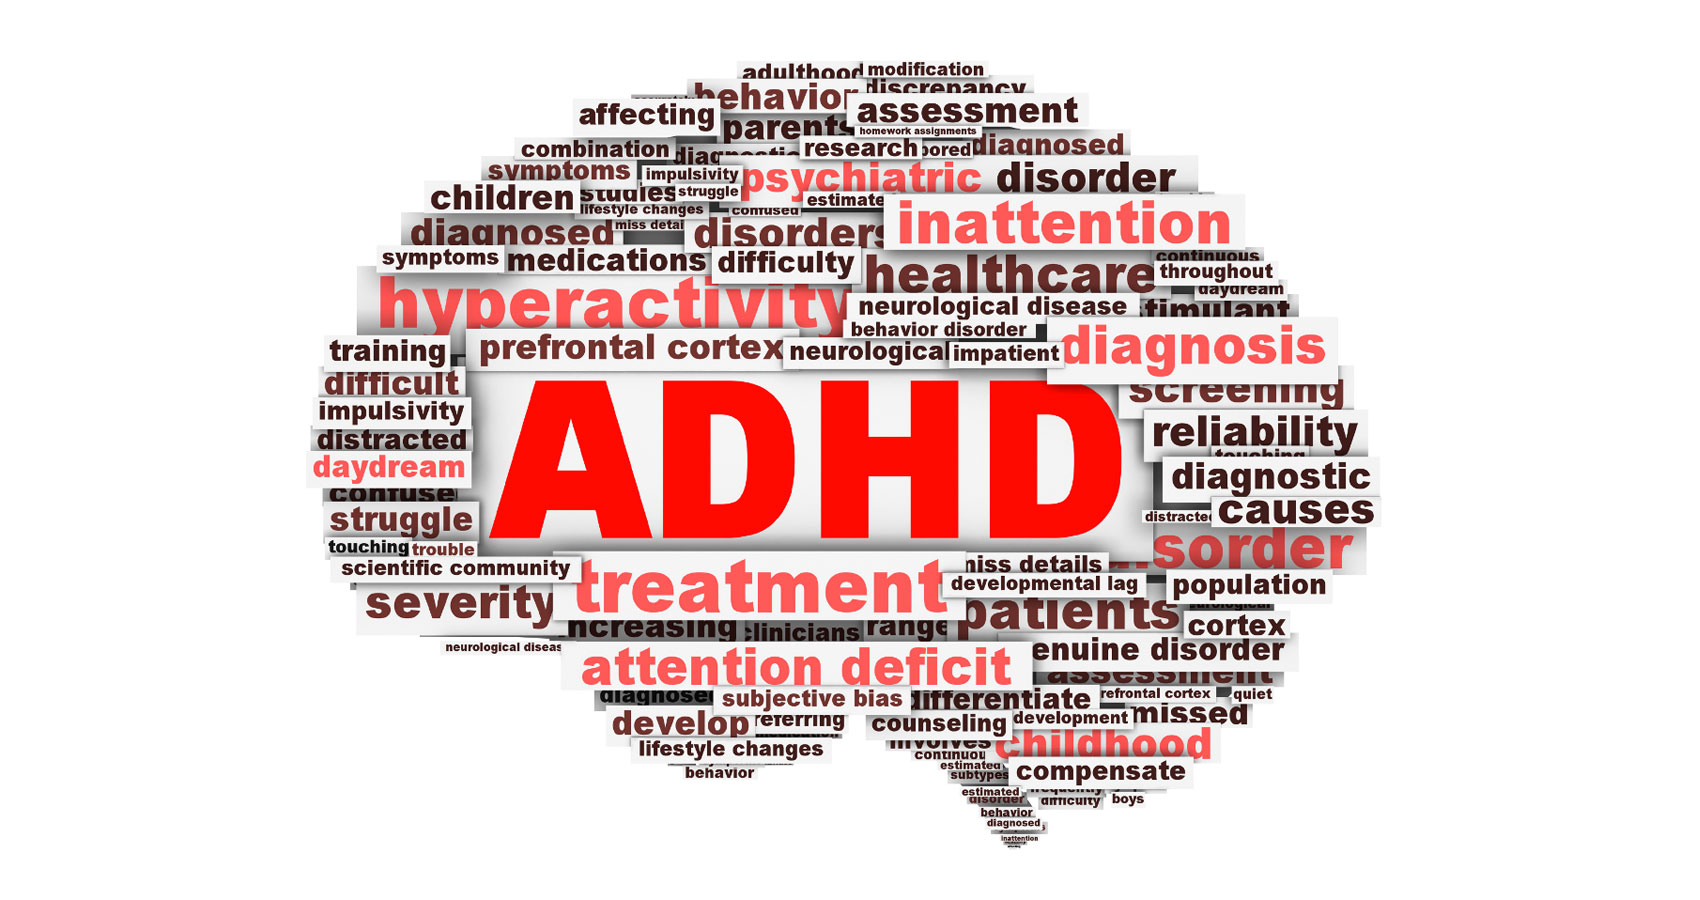 Attention Deficit Hyperactivity Disorder (ADHD): Science or Social Prejudice? at Spillwords.com